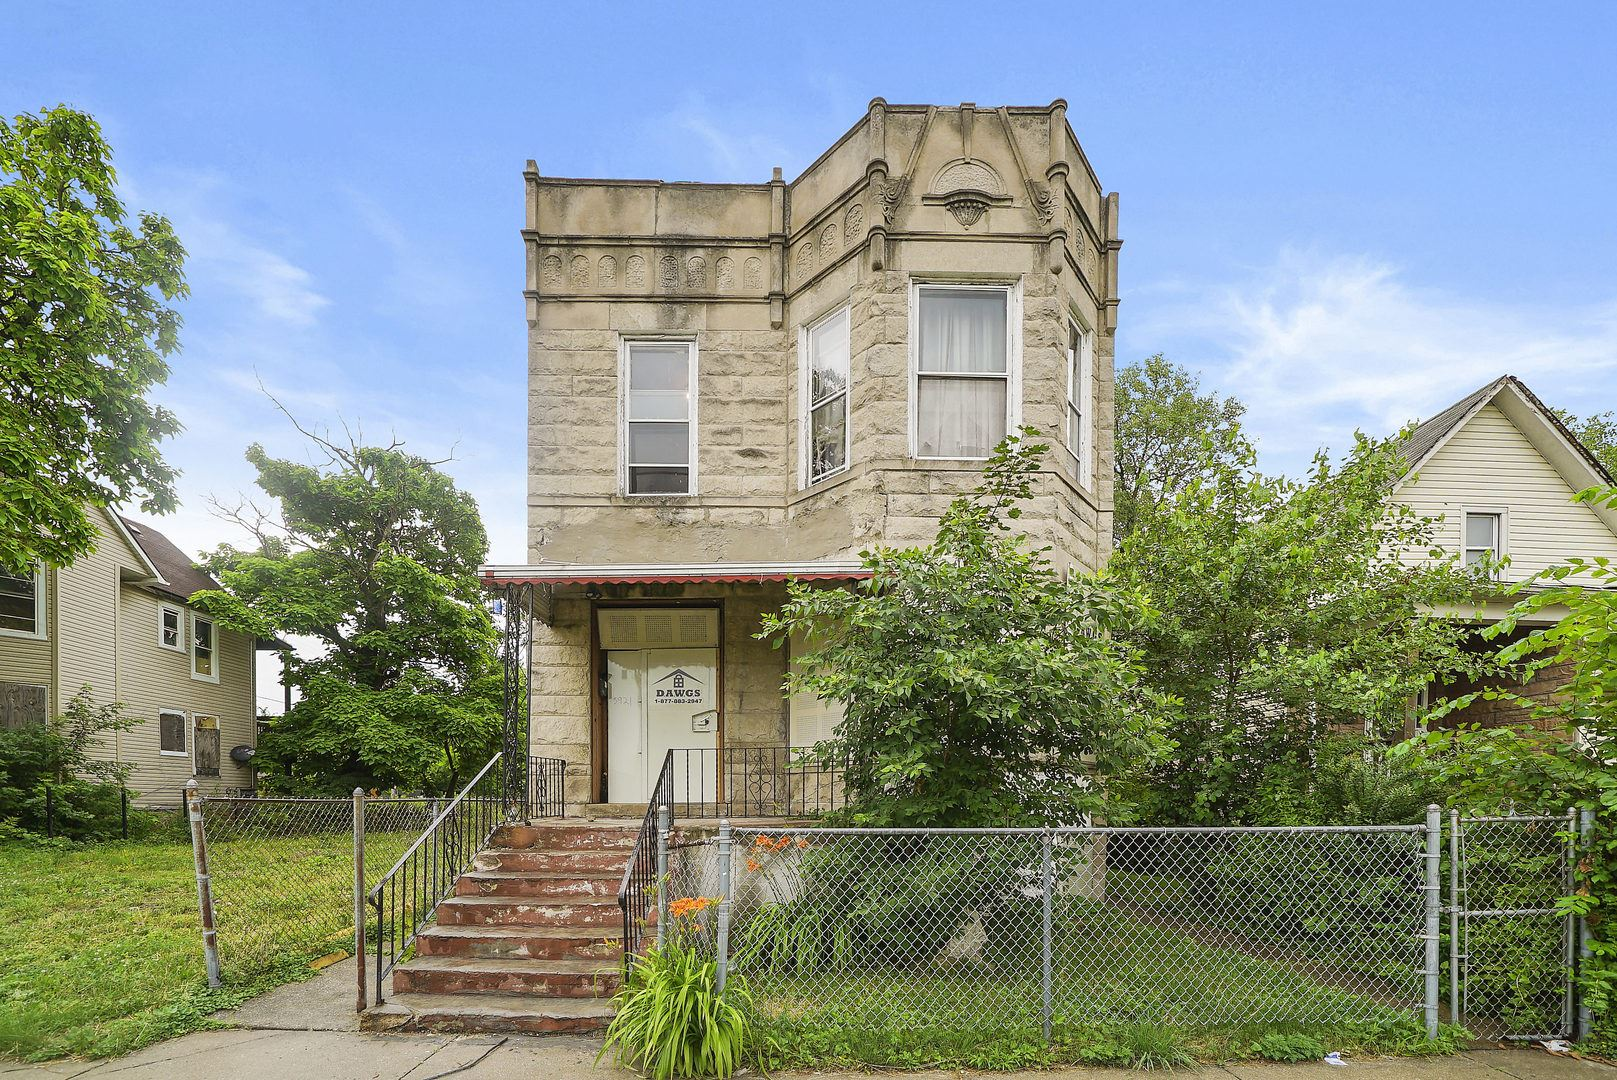 5921 S Morgan Street, Chicago, IL 60636 - #: 10762506